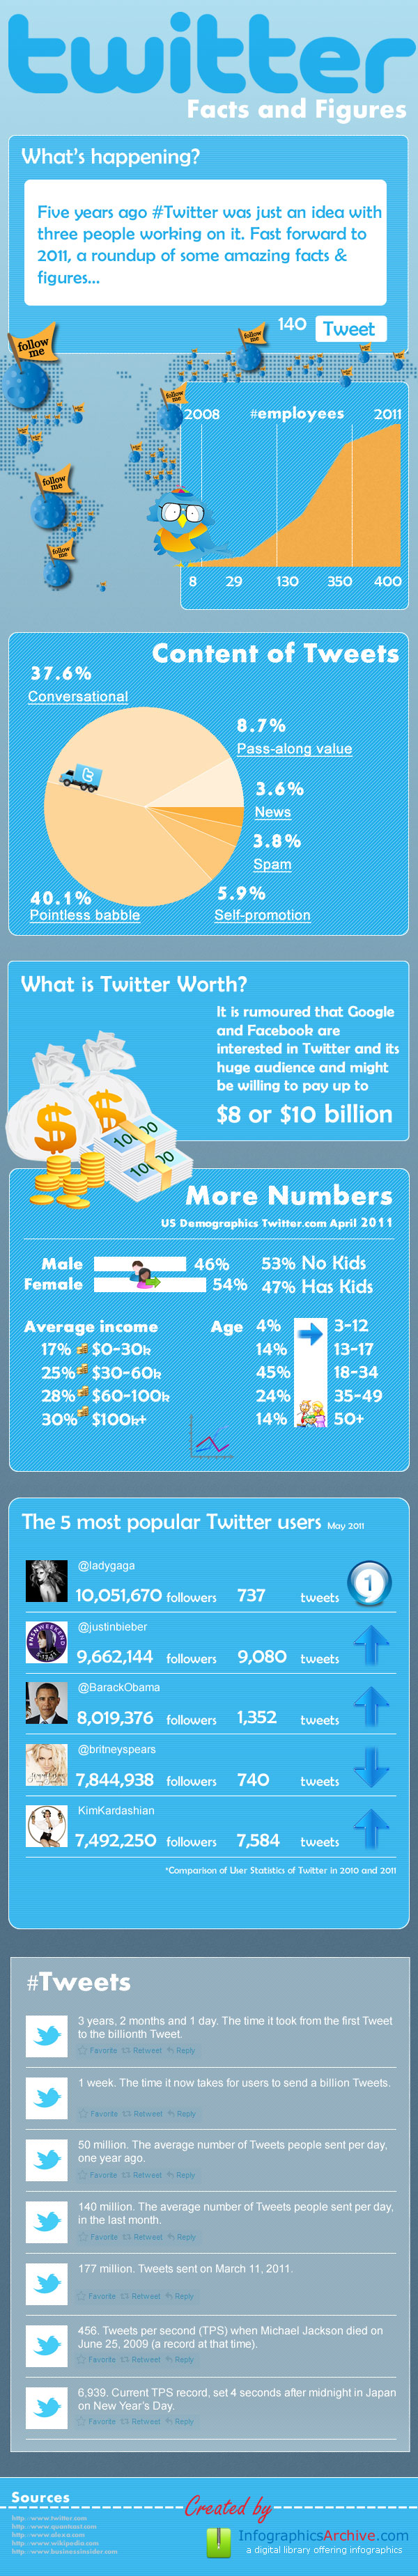 Twitter Facts And Figures: The True History [Infographic]